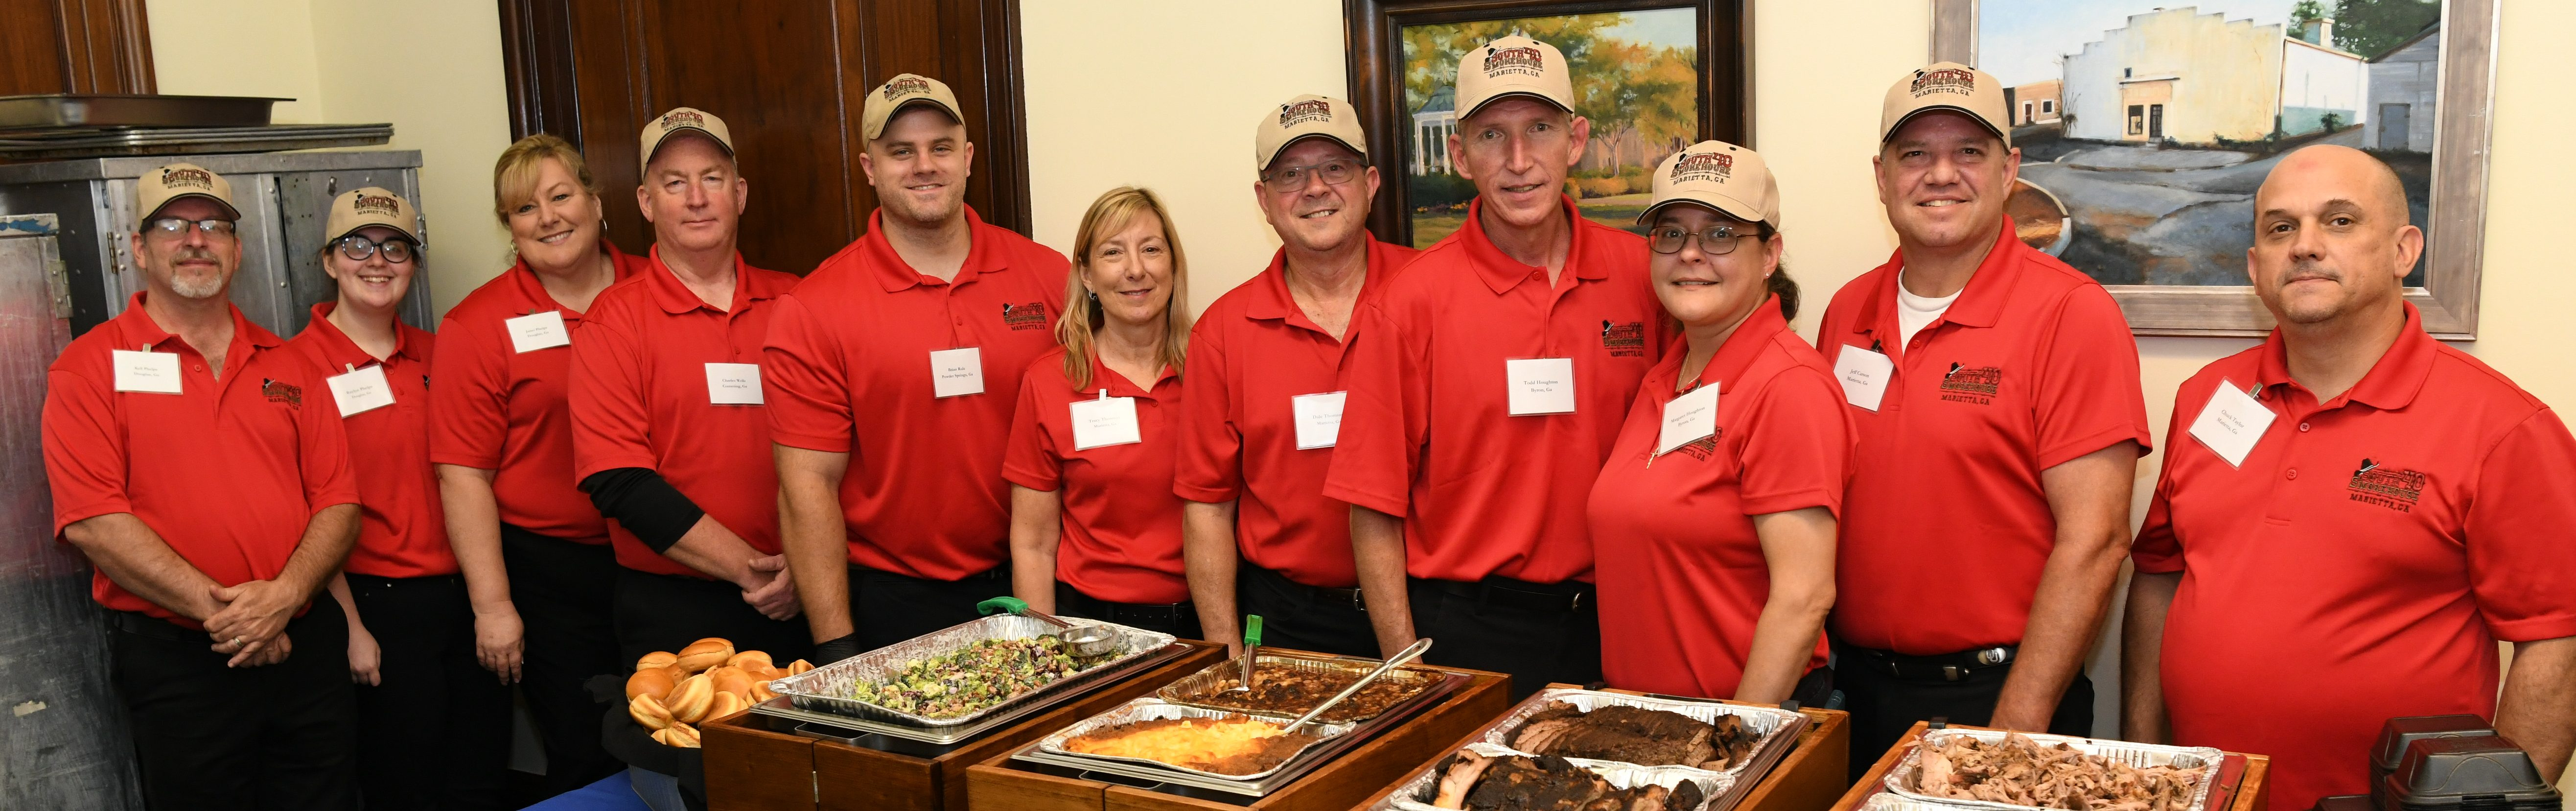 The serving line set up in Senator Isakson's office with the entire Smokehouse 40 BBQ catering team. (Left to Right) Kell Phelps, Raylyn Phelps, Janet Phelps, Charles Wells, Brian Rule, Tracey Thornton, Dale Thornton, Todd Houghton, Margaret Houghton, Jeff Carson, and Chuck Taylor.